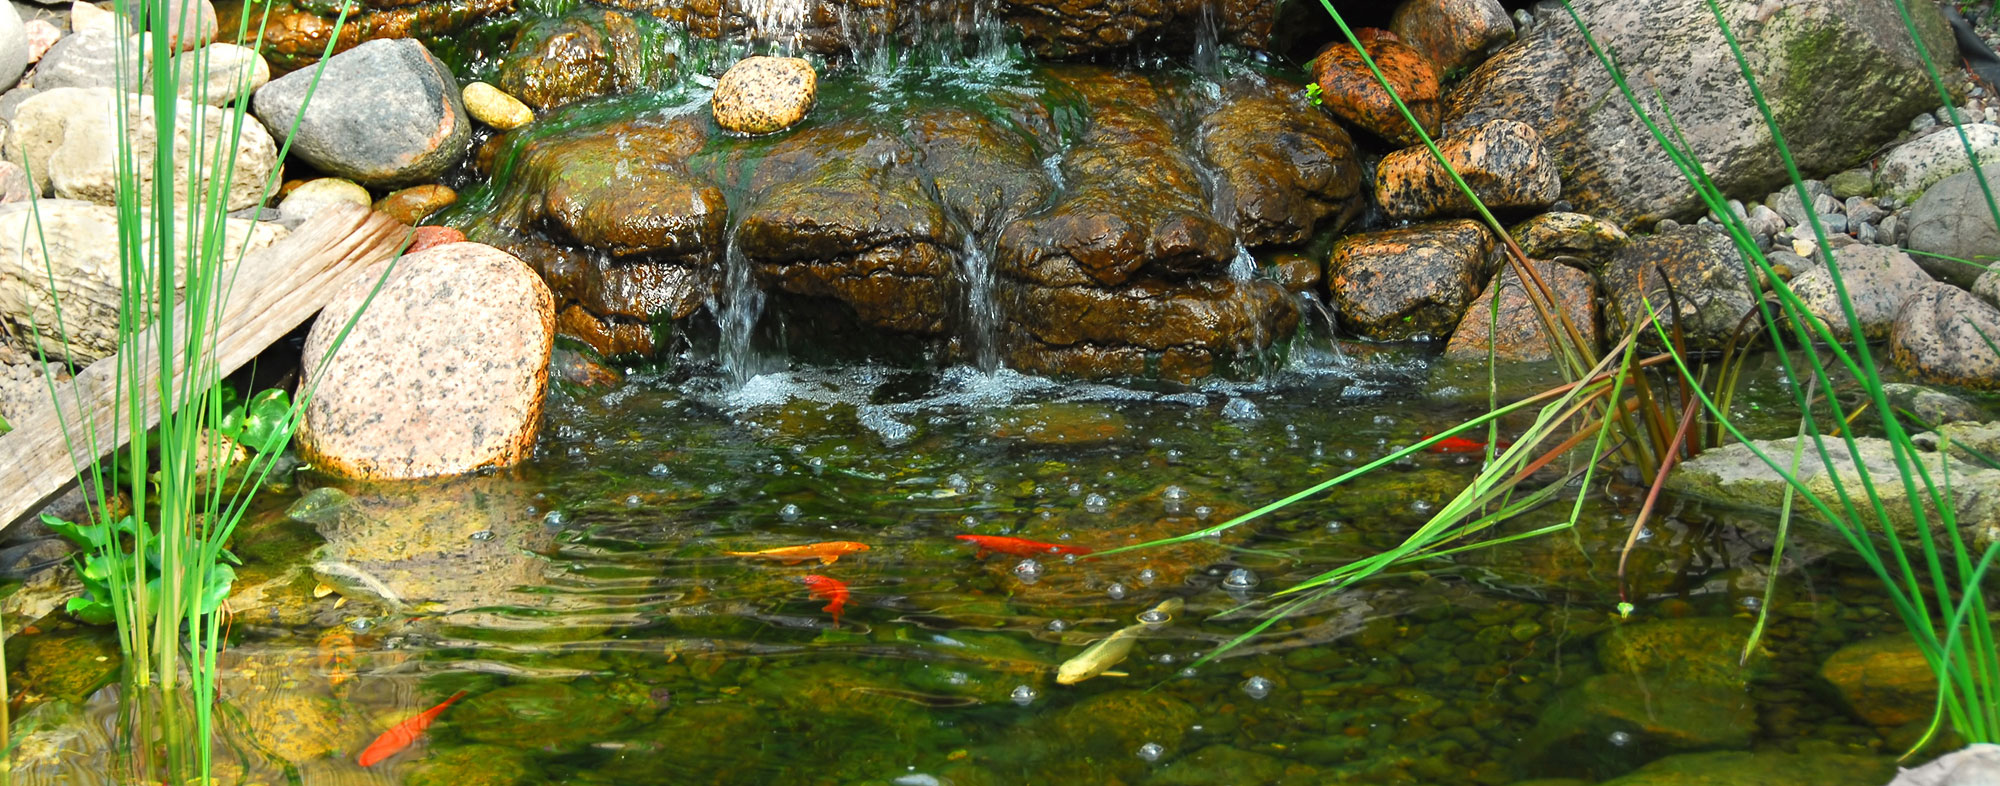 Keeping Your Pond Clean | Hartz